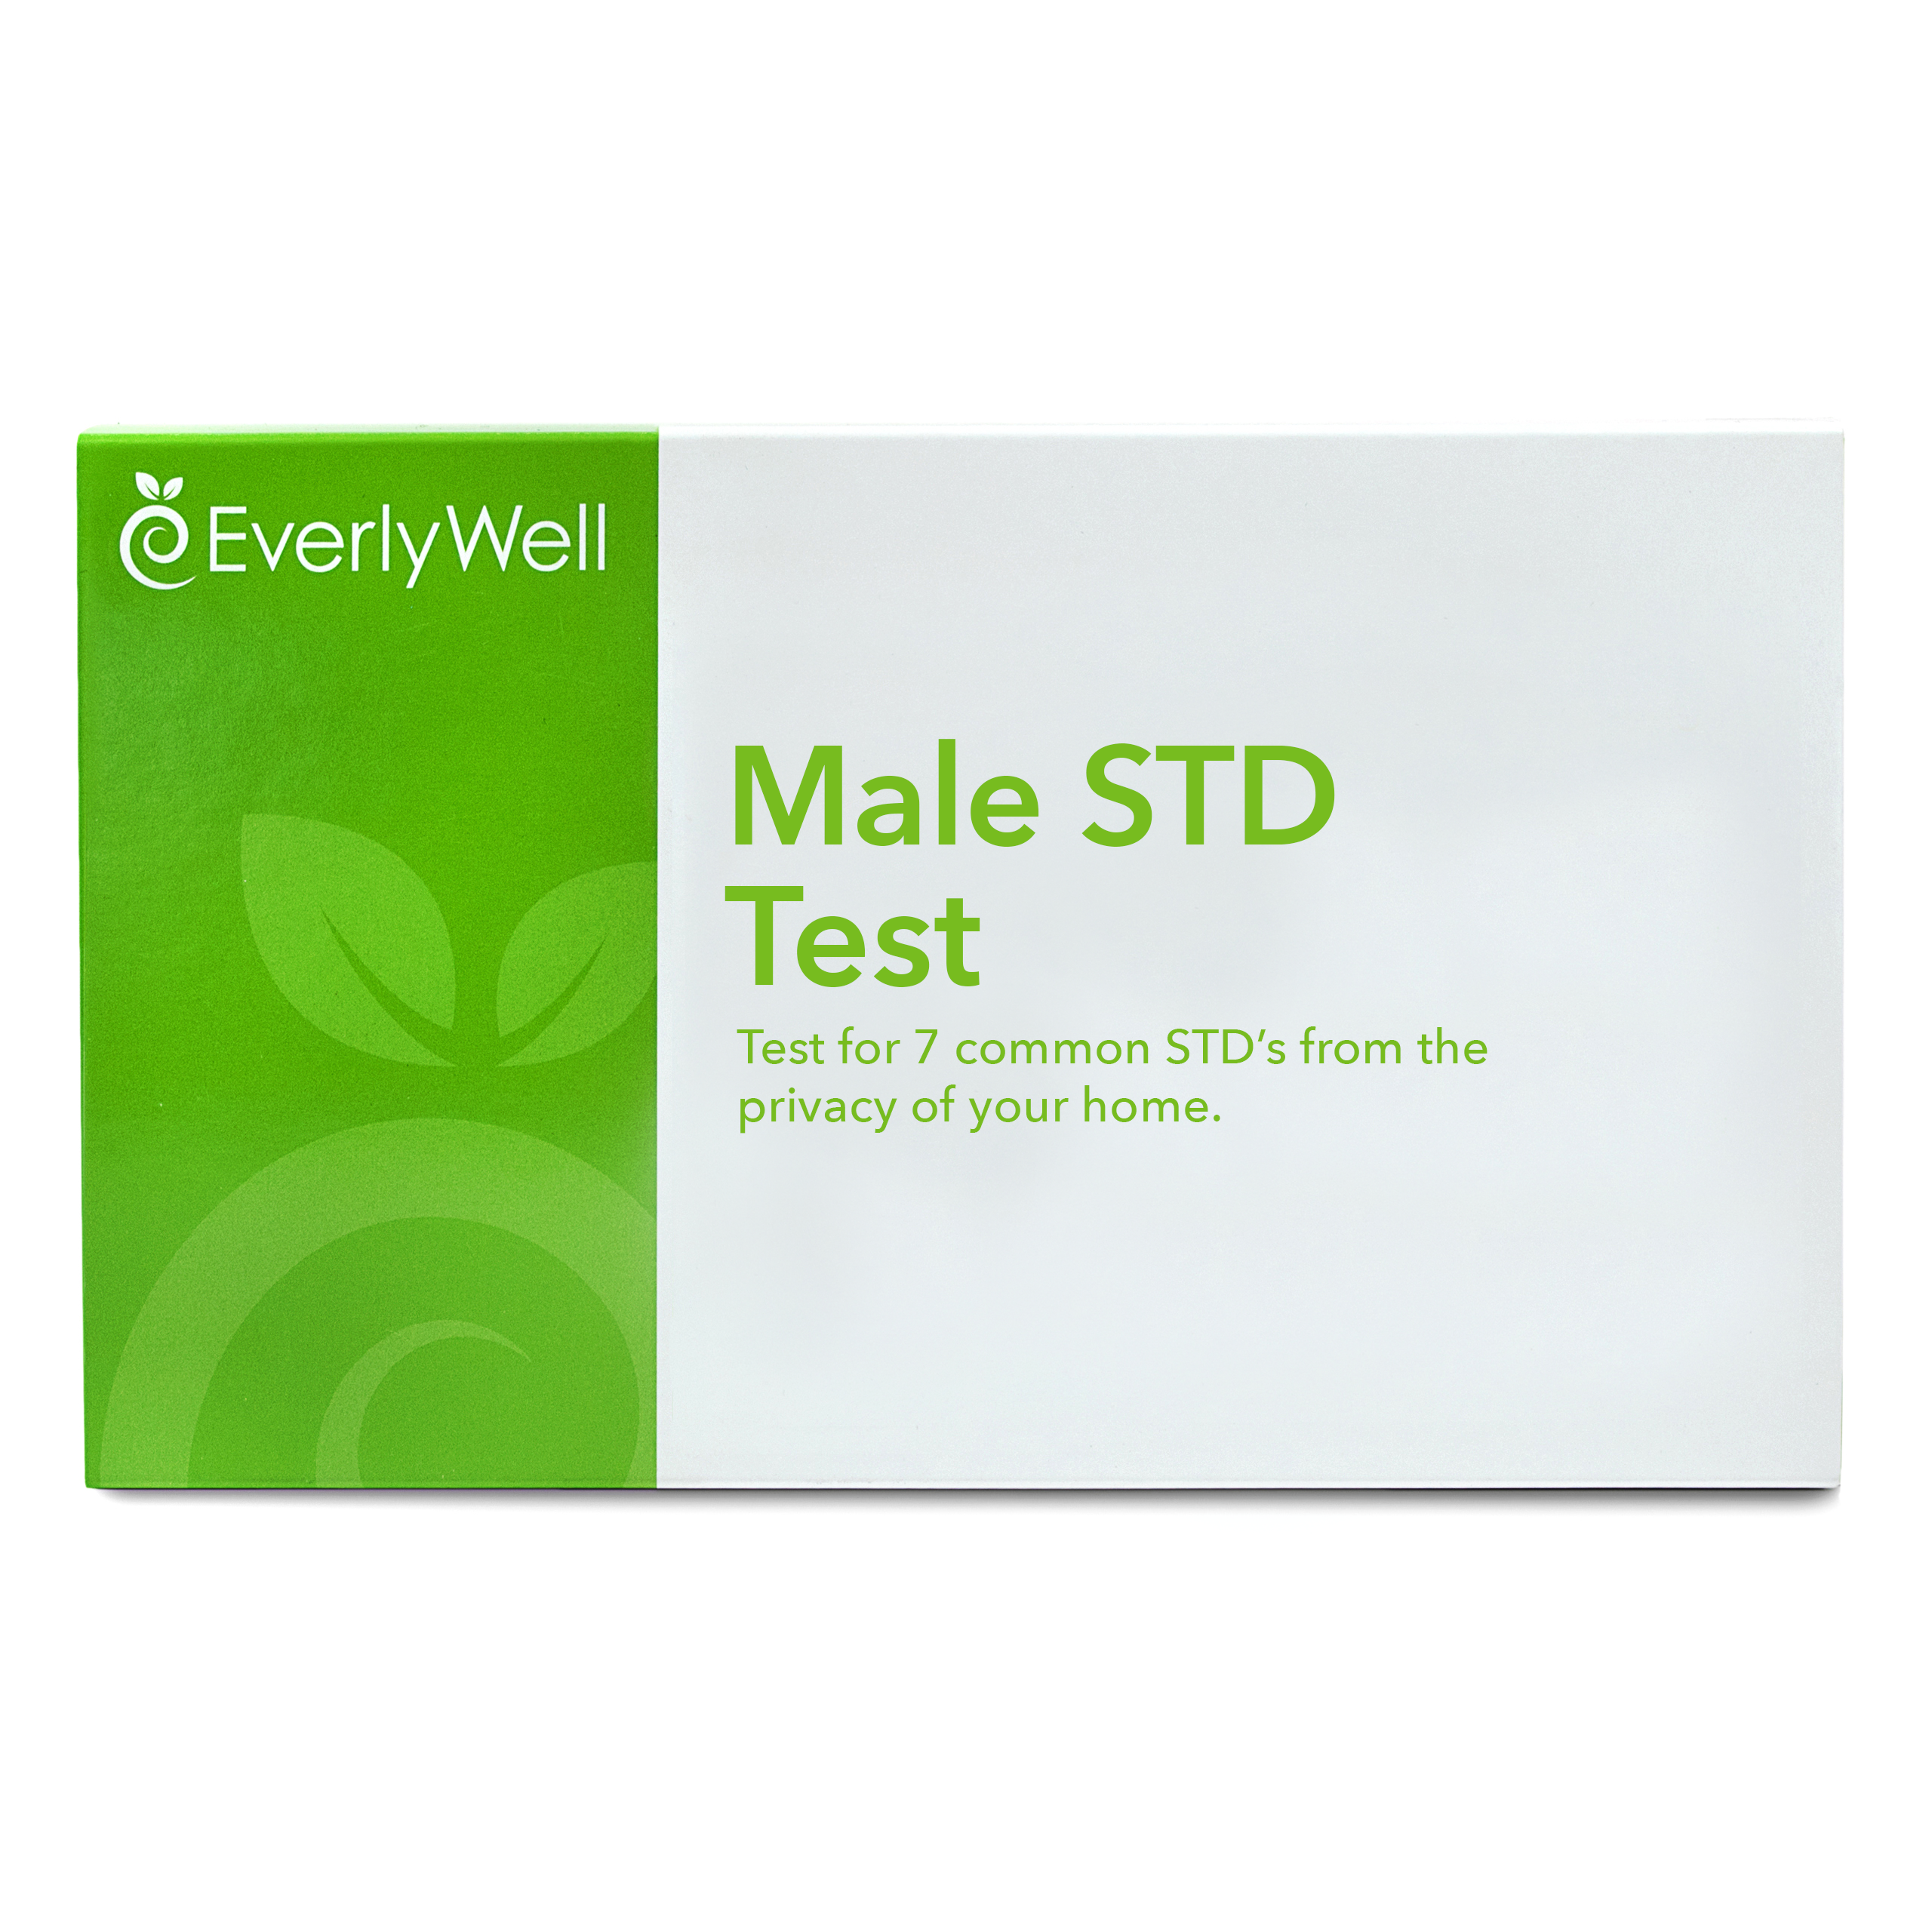 EverlyWell Male STD Test